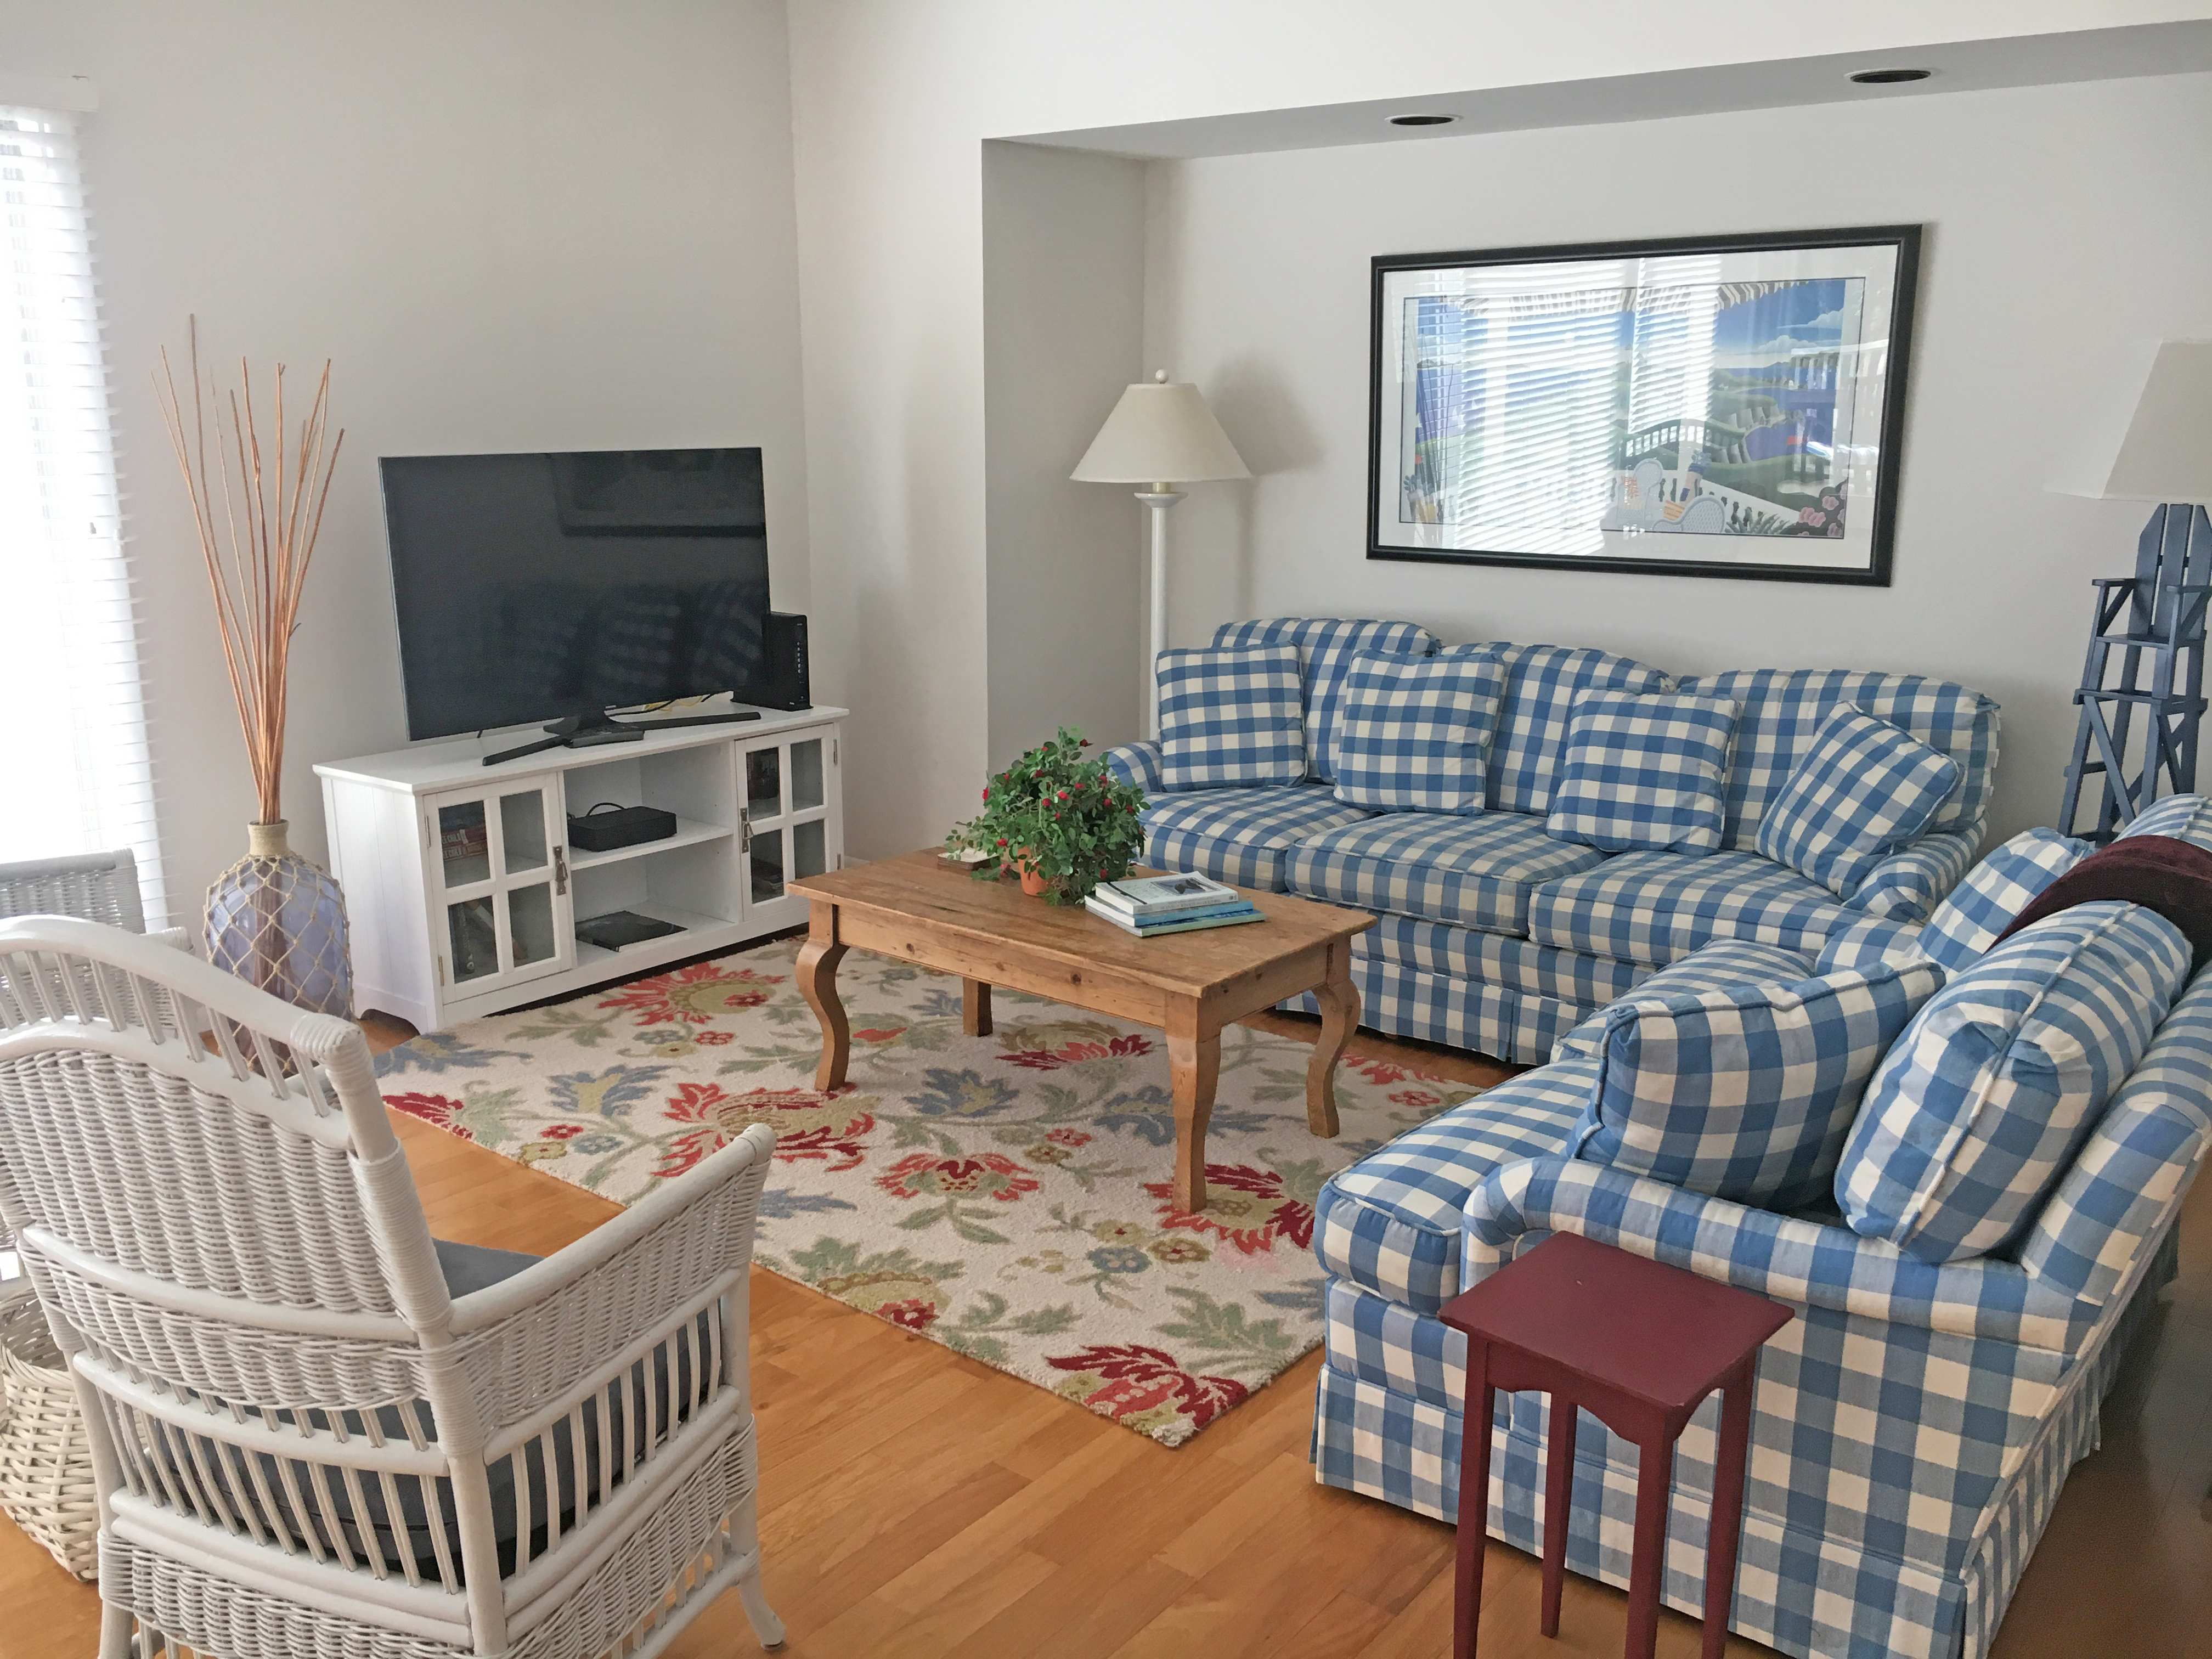 Beautifully remodeled Spinnaker with two bedrooms, two bathrooms, sunroom, and 3 decks.